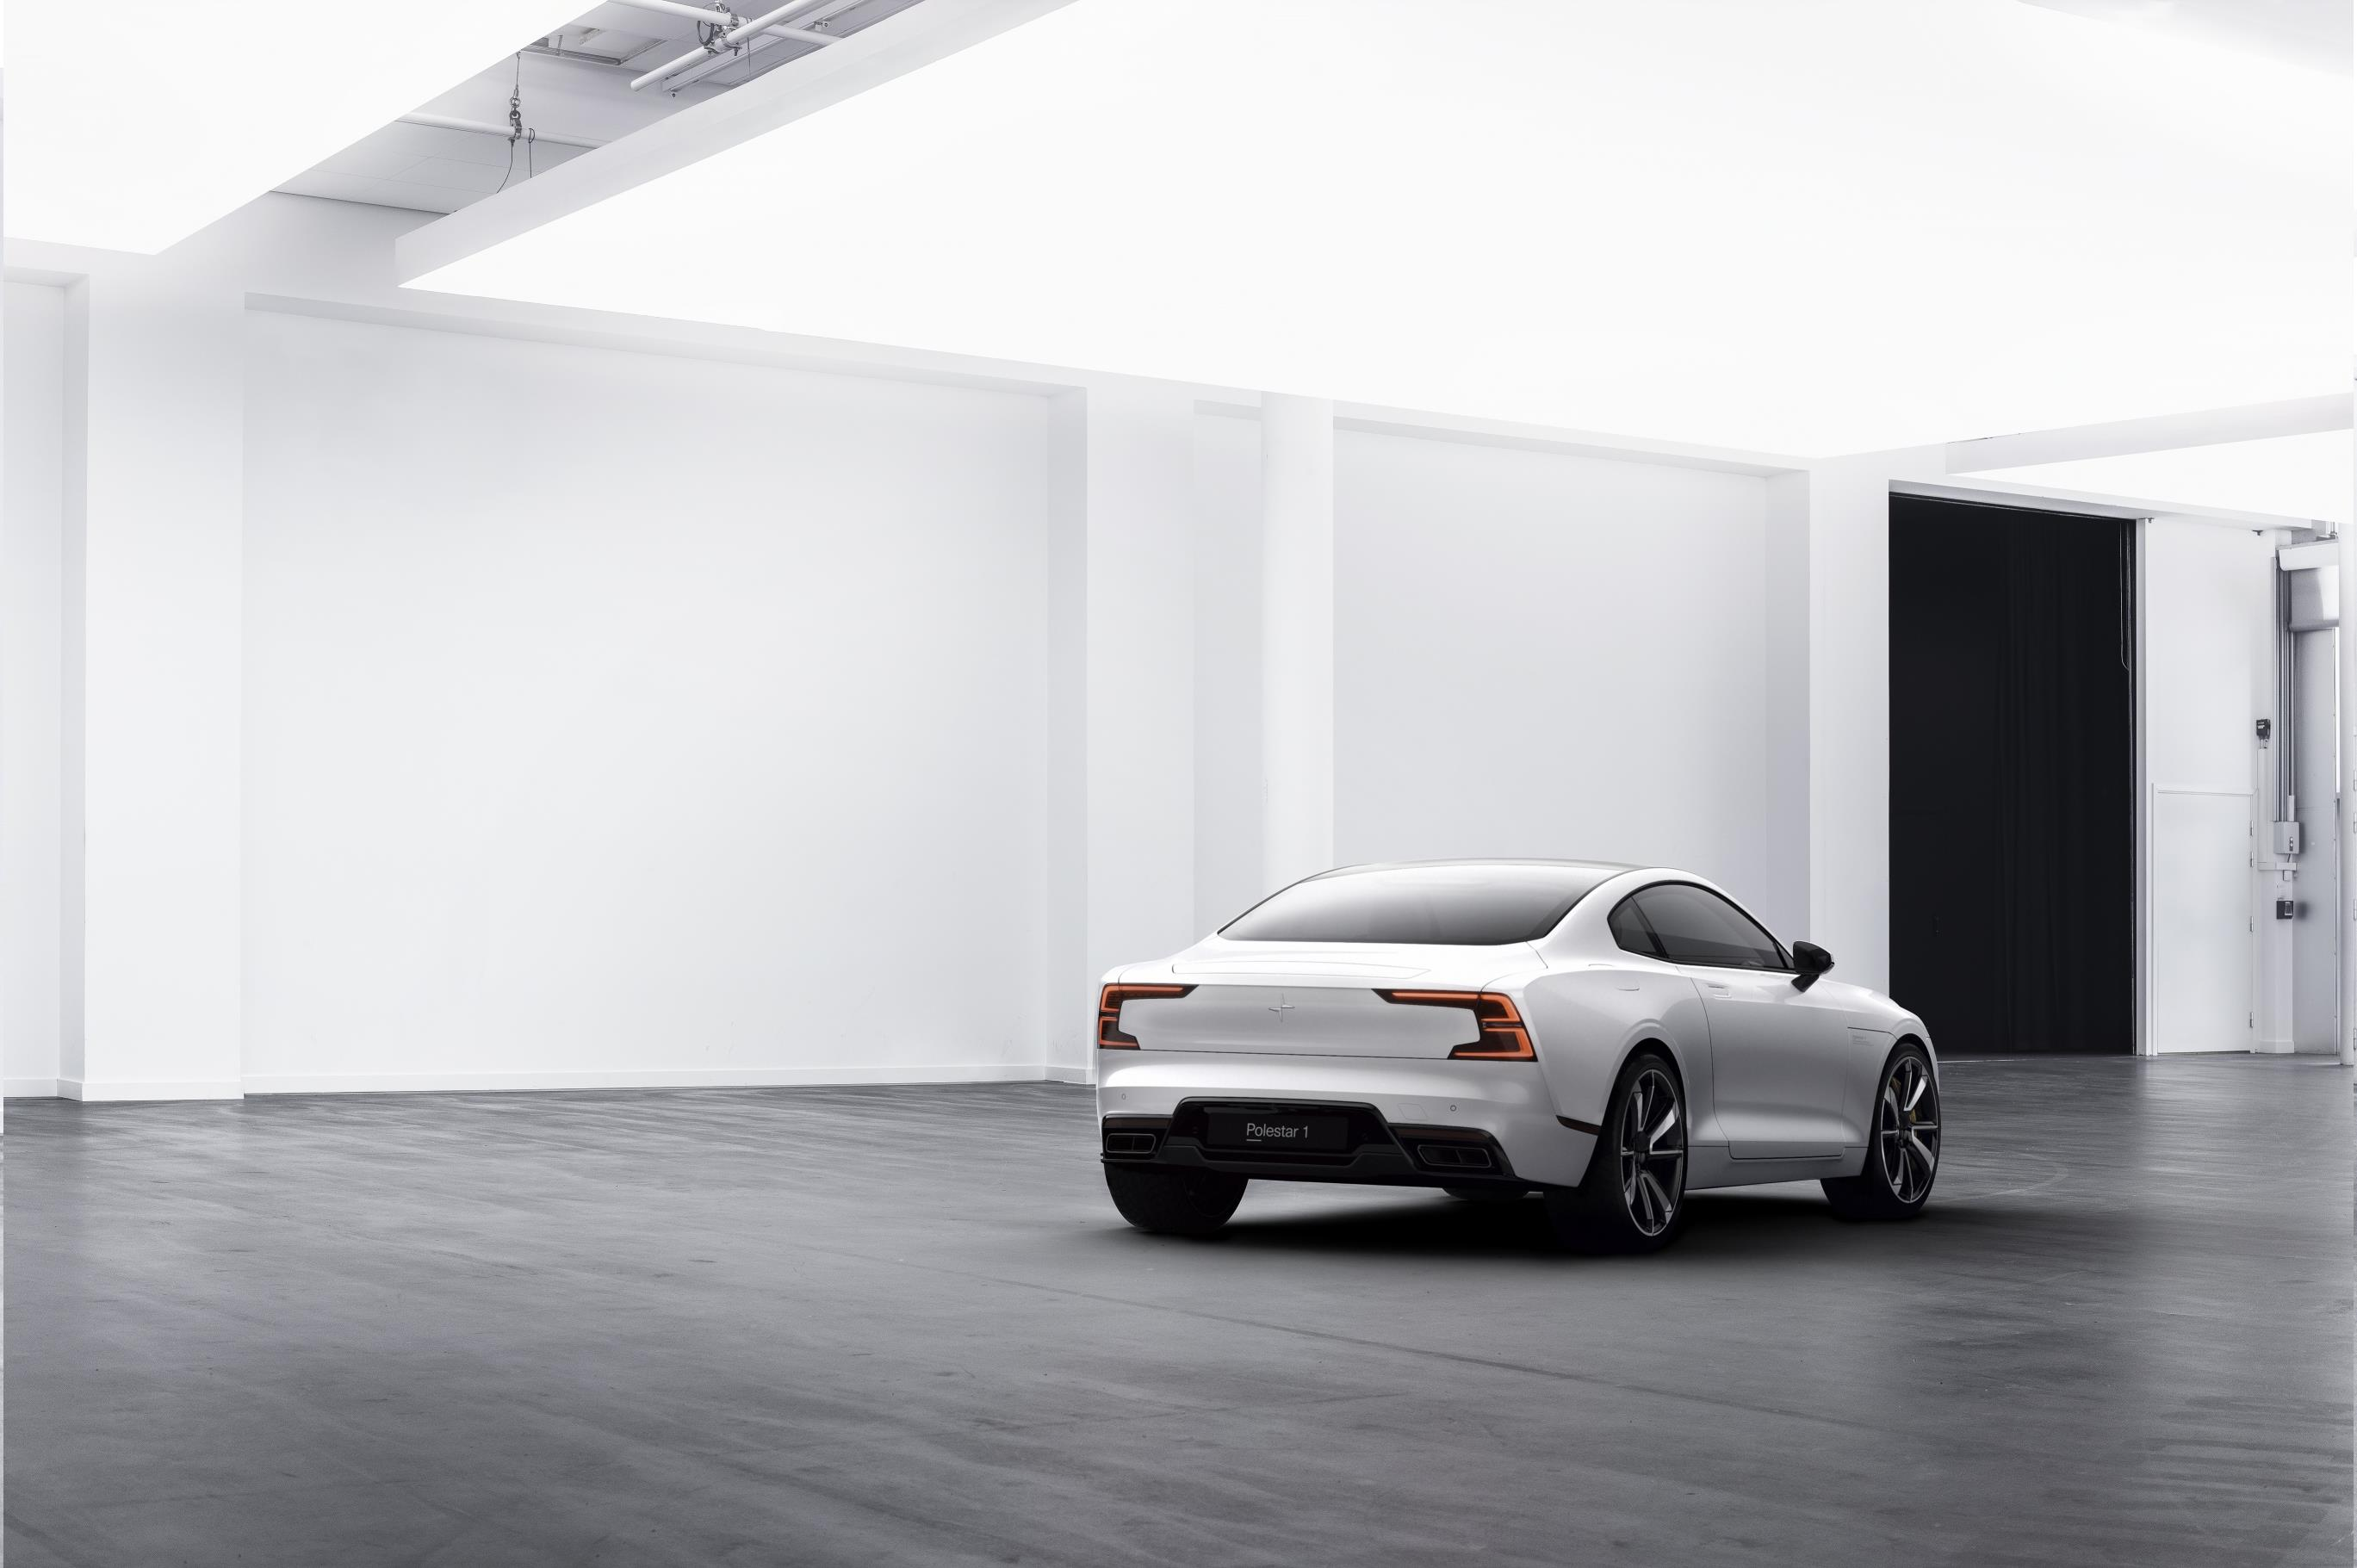 A New Era for Polestar, Electric Performance & Car Ownership